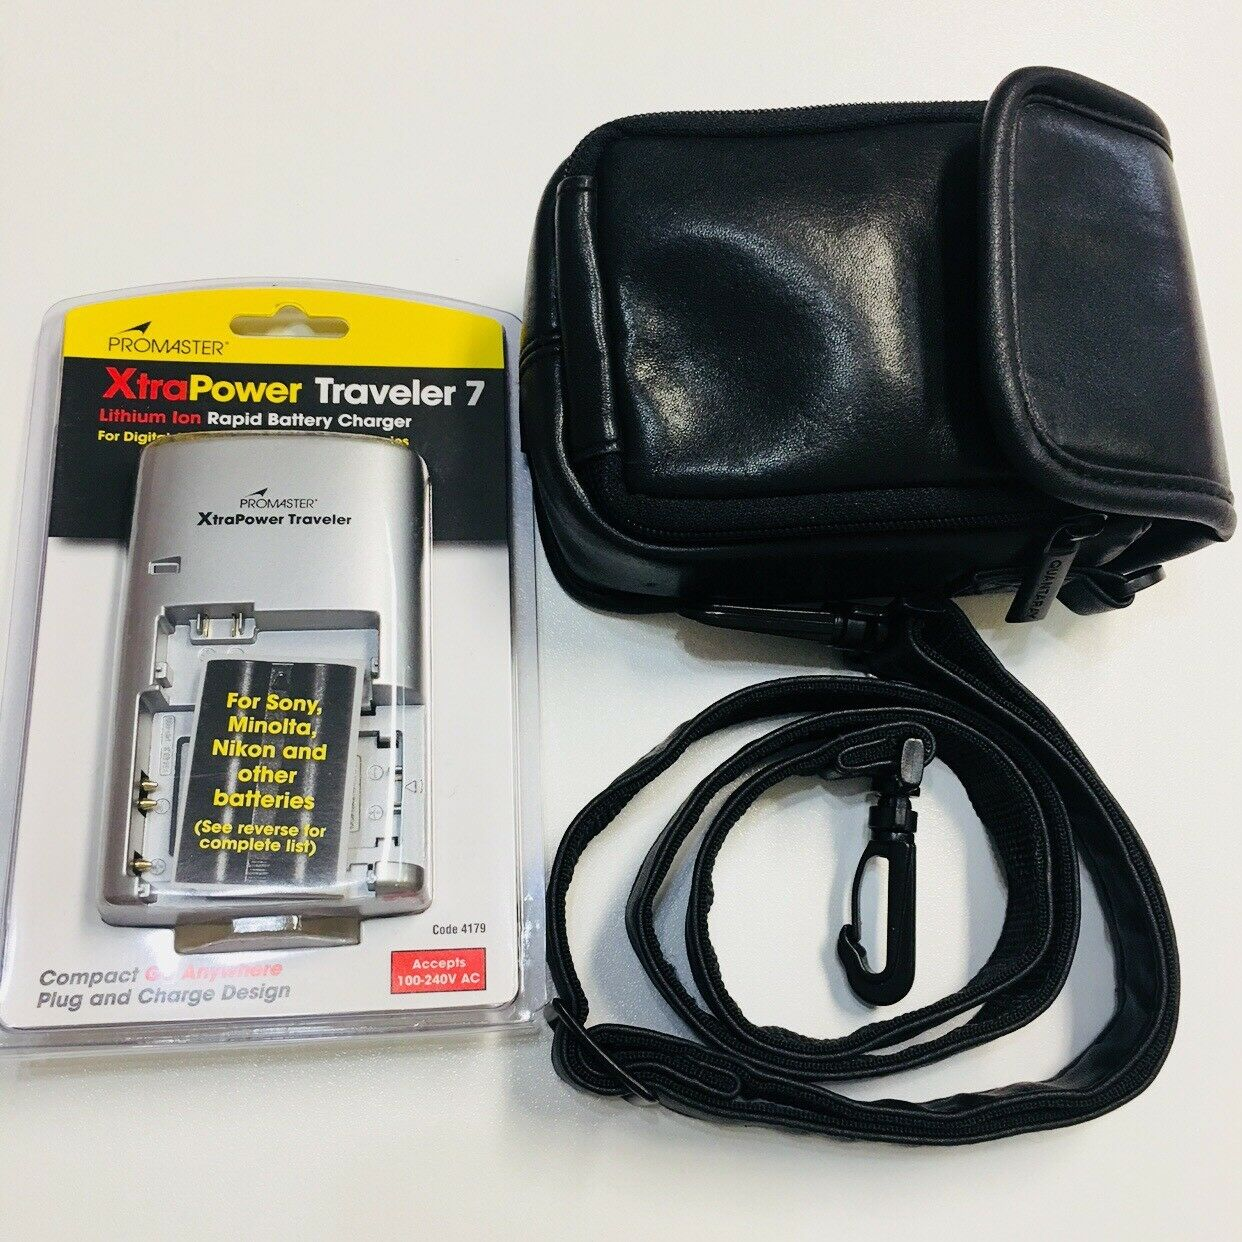 Quantaray Leather Camera Case ProMaster XtraPower Traveler 7 Battery Charger